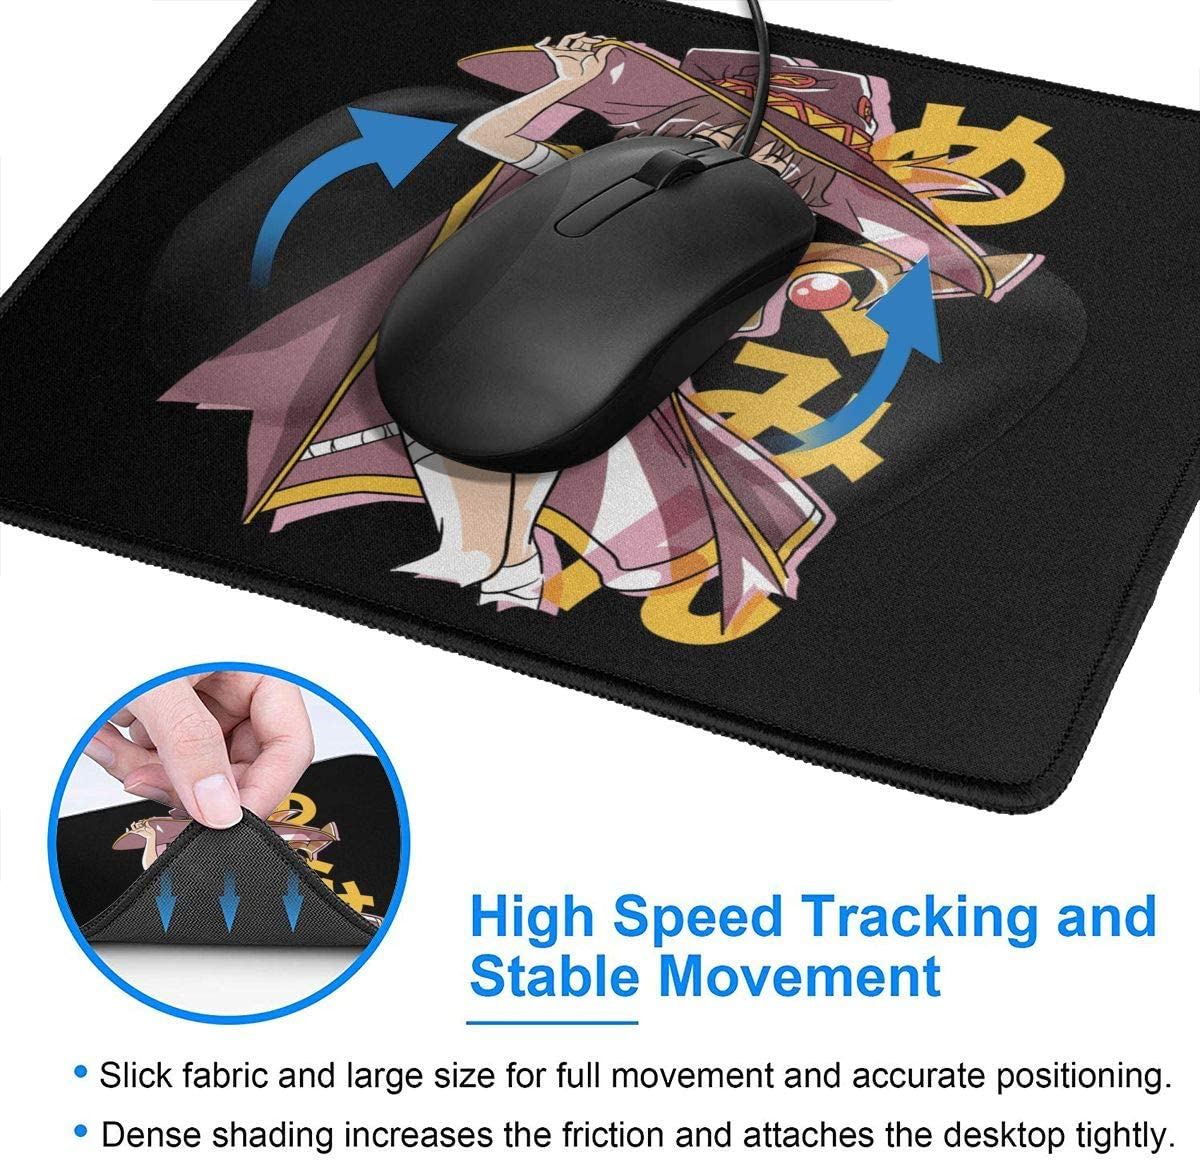 Design Mouse Pad Anti Slip Anime Konosuba Cute Megumin Gaming Mouse Pad with Stitched Edge Computer PC Mousepad Rubber Base for Office Home